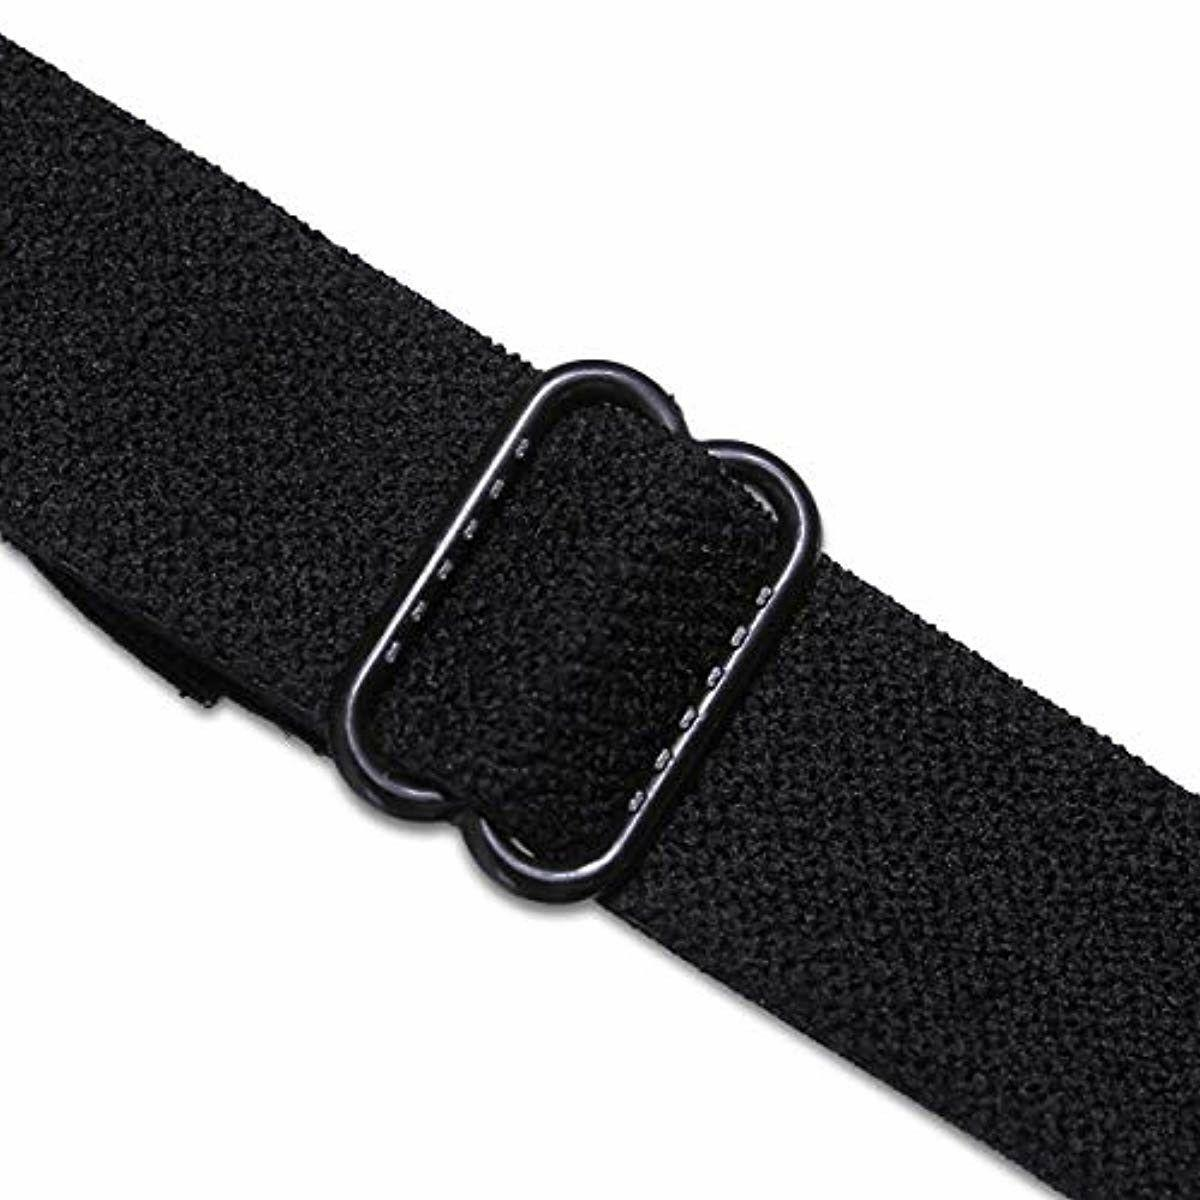 Alaska Bear Sleep Smooth Strap